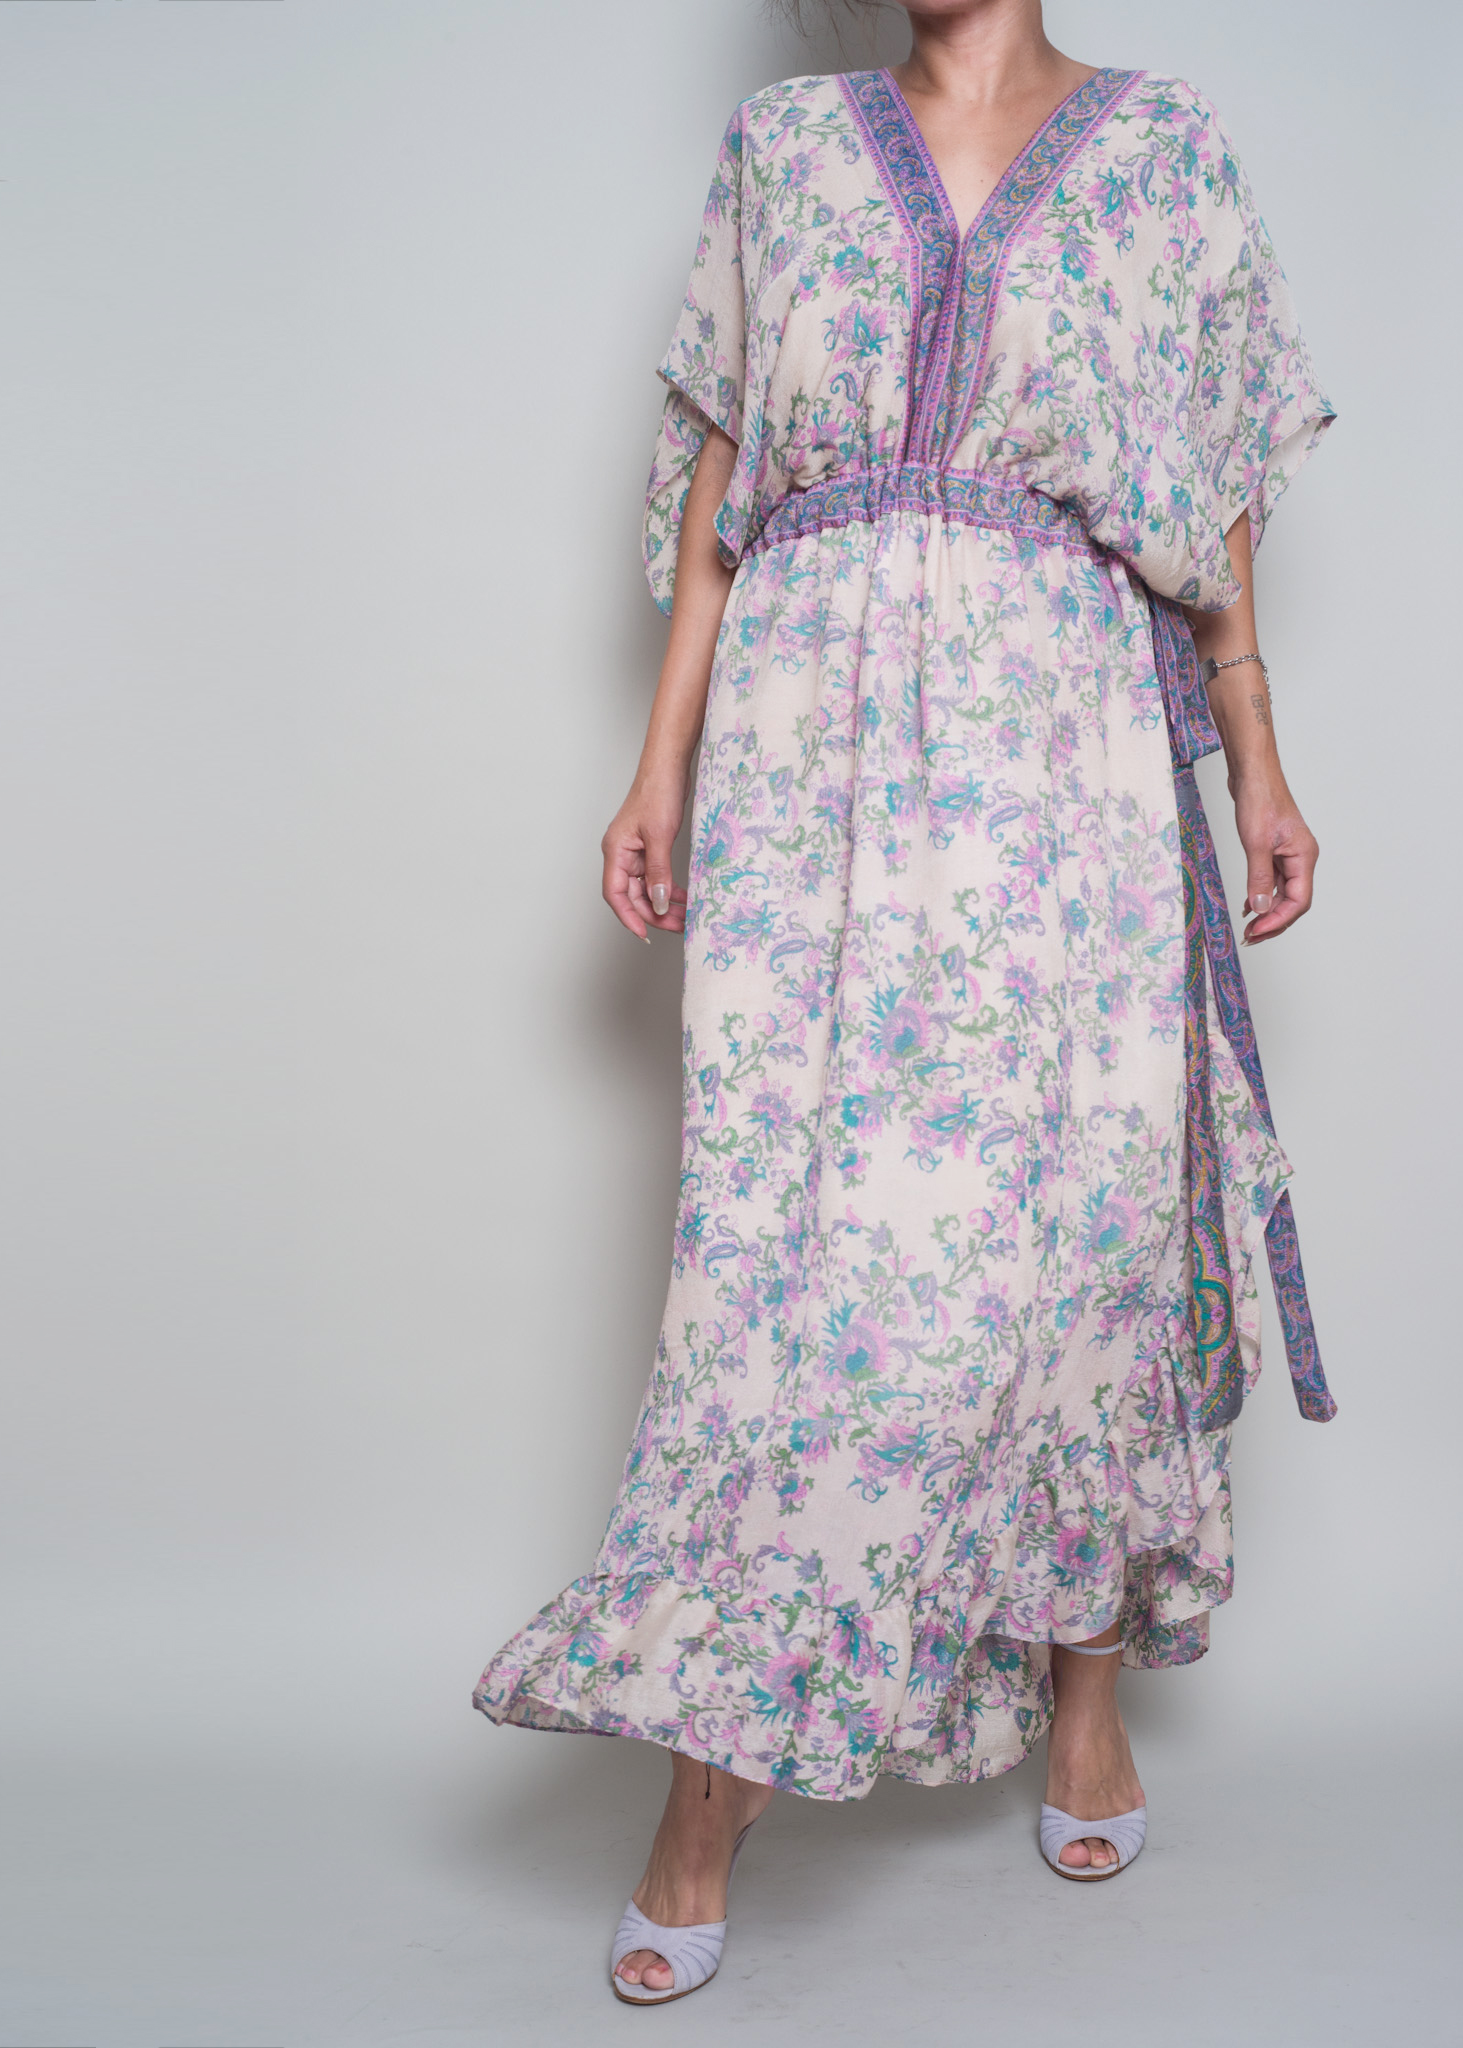 GIORGIA White Floral - SOLD OUT